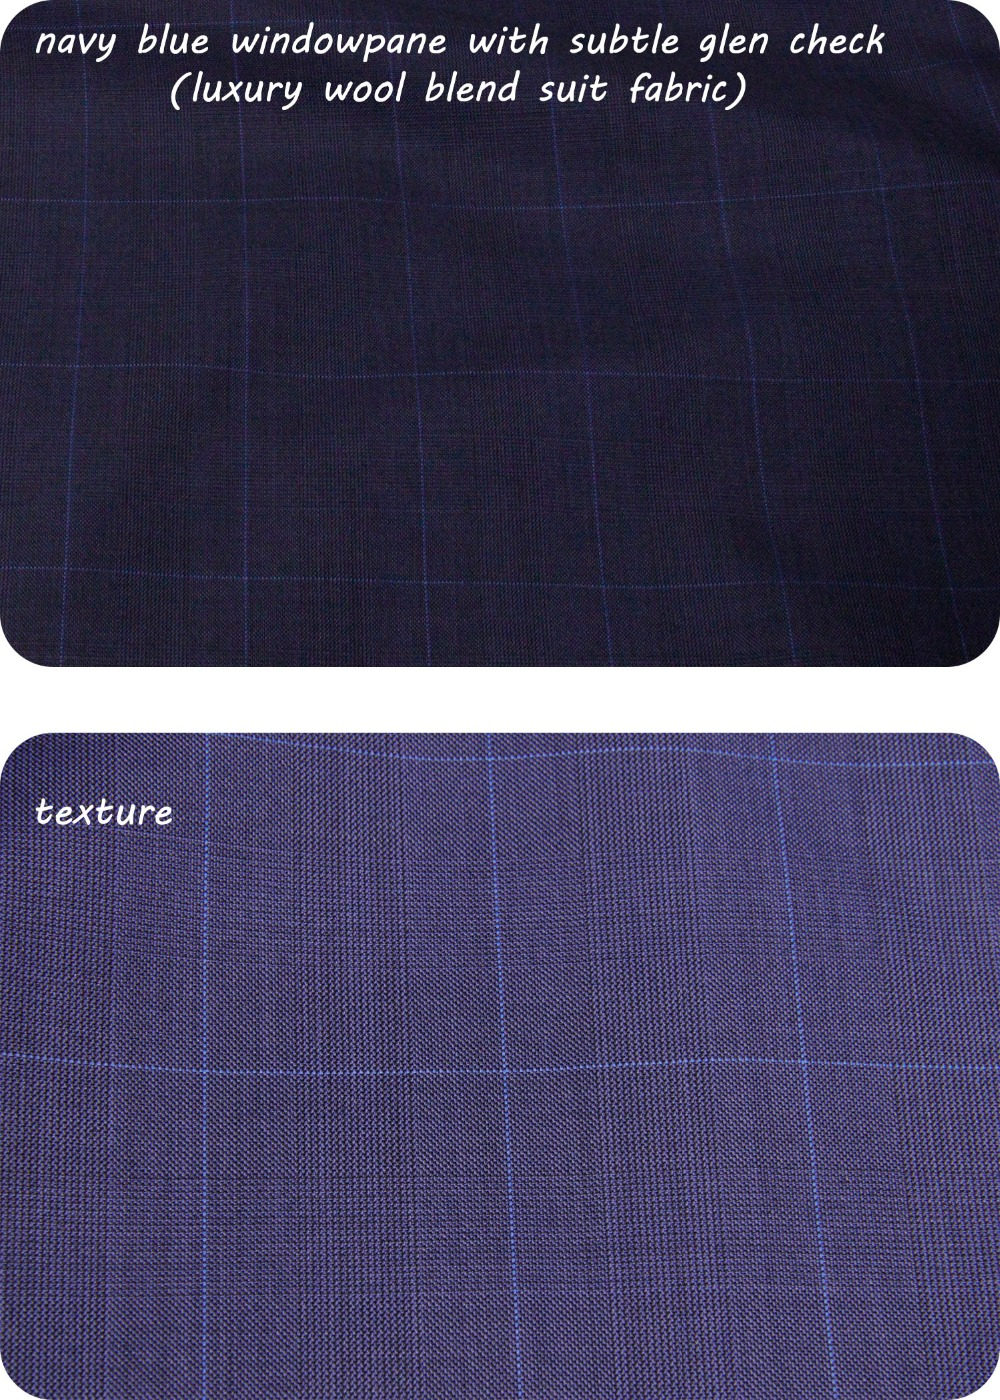 navy blue windowpane with subtle glen check